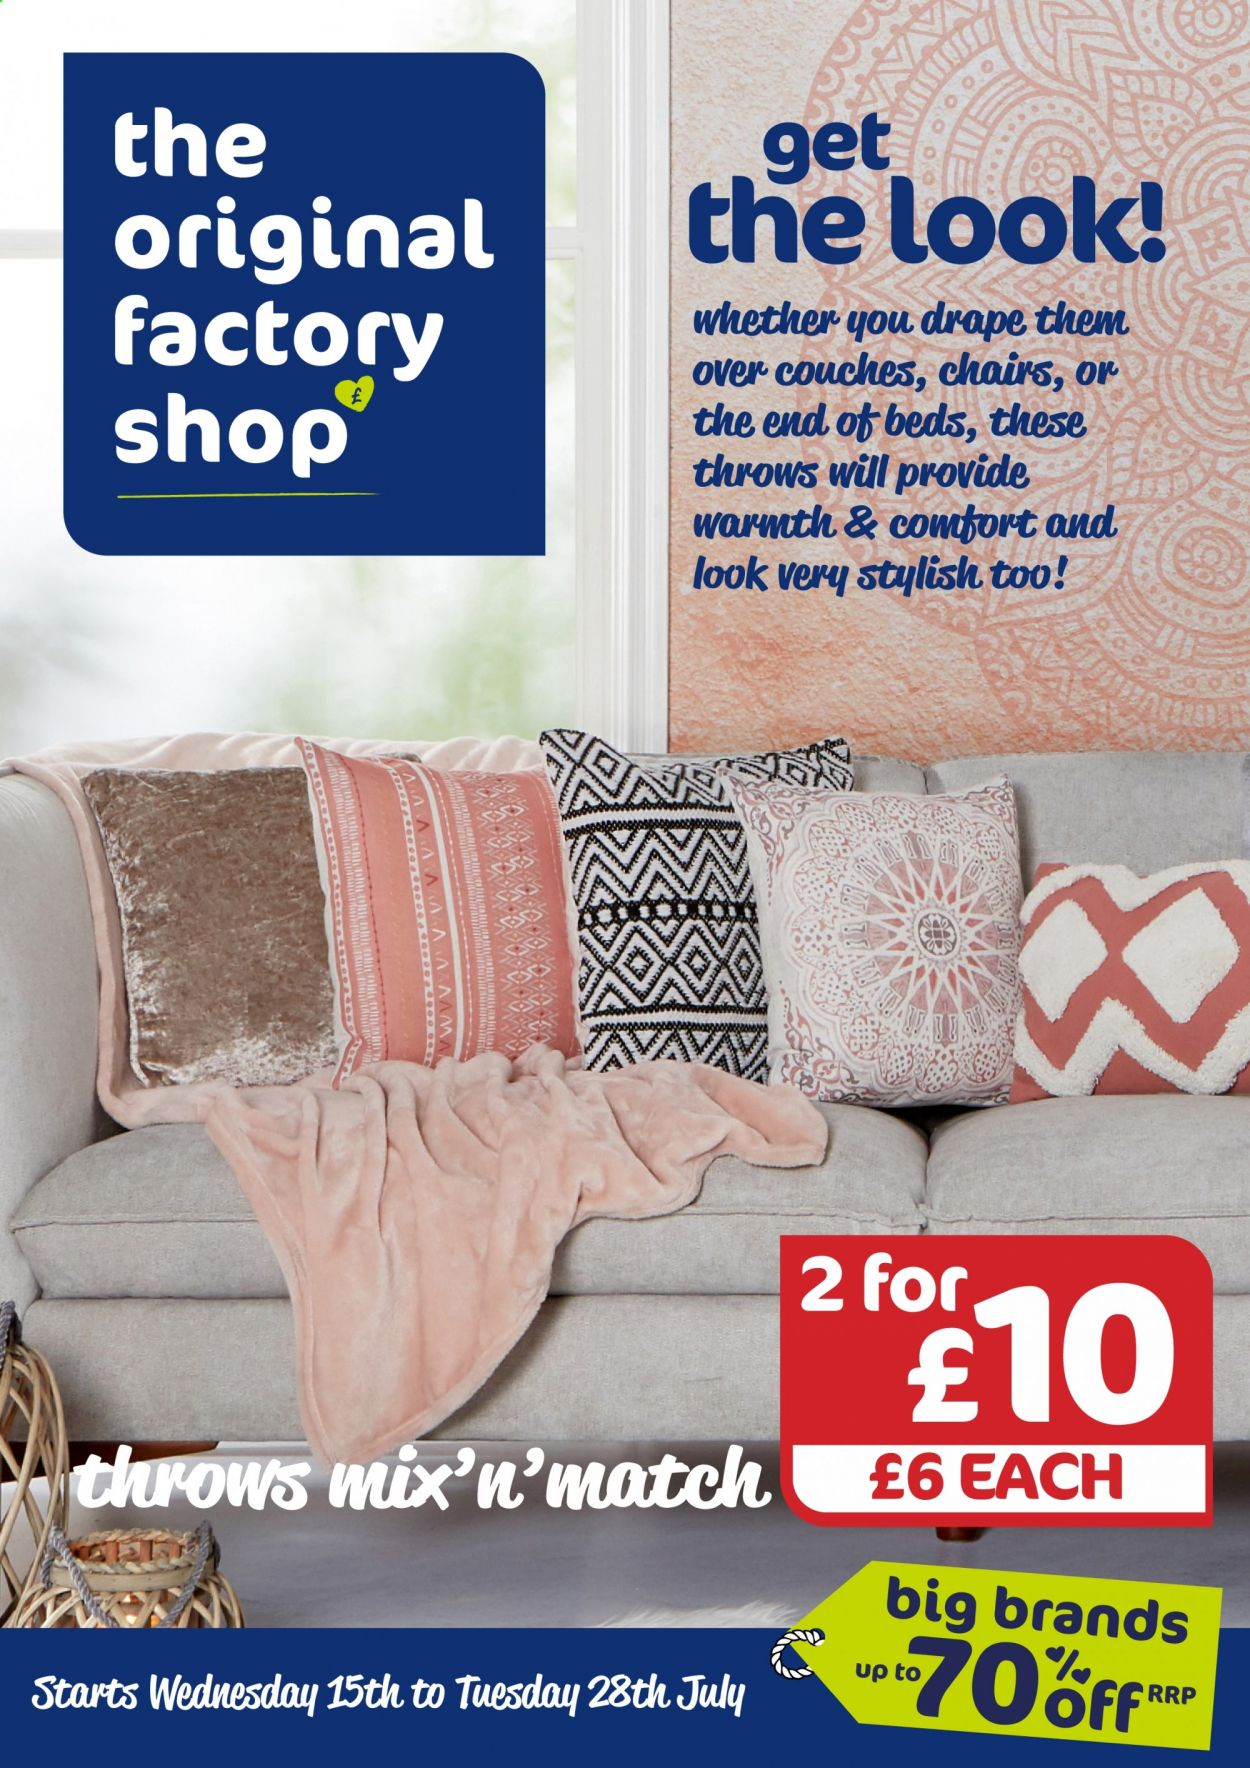 The Original Factory Shop offer  - 15.7.2020 - 28.7.2020 - Sales products - throw, chair. Page 1.